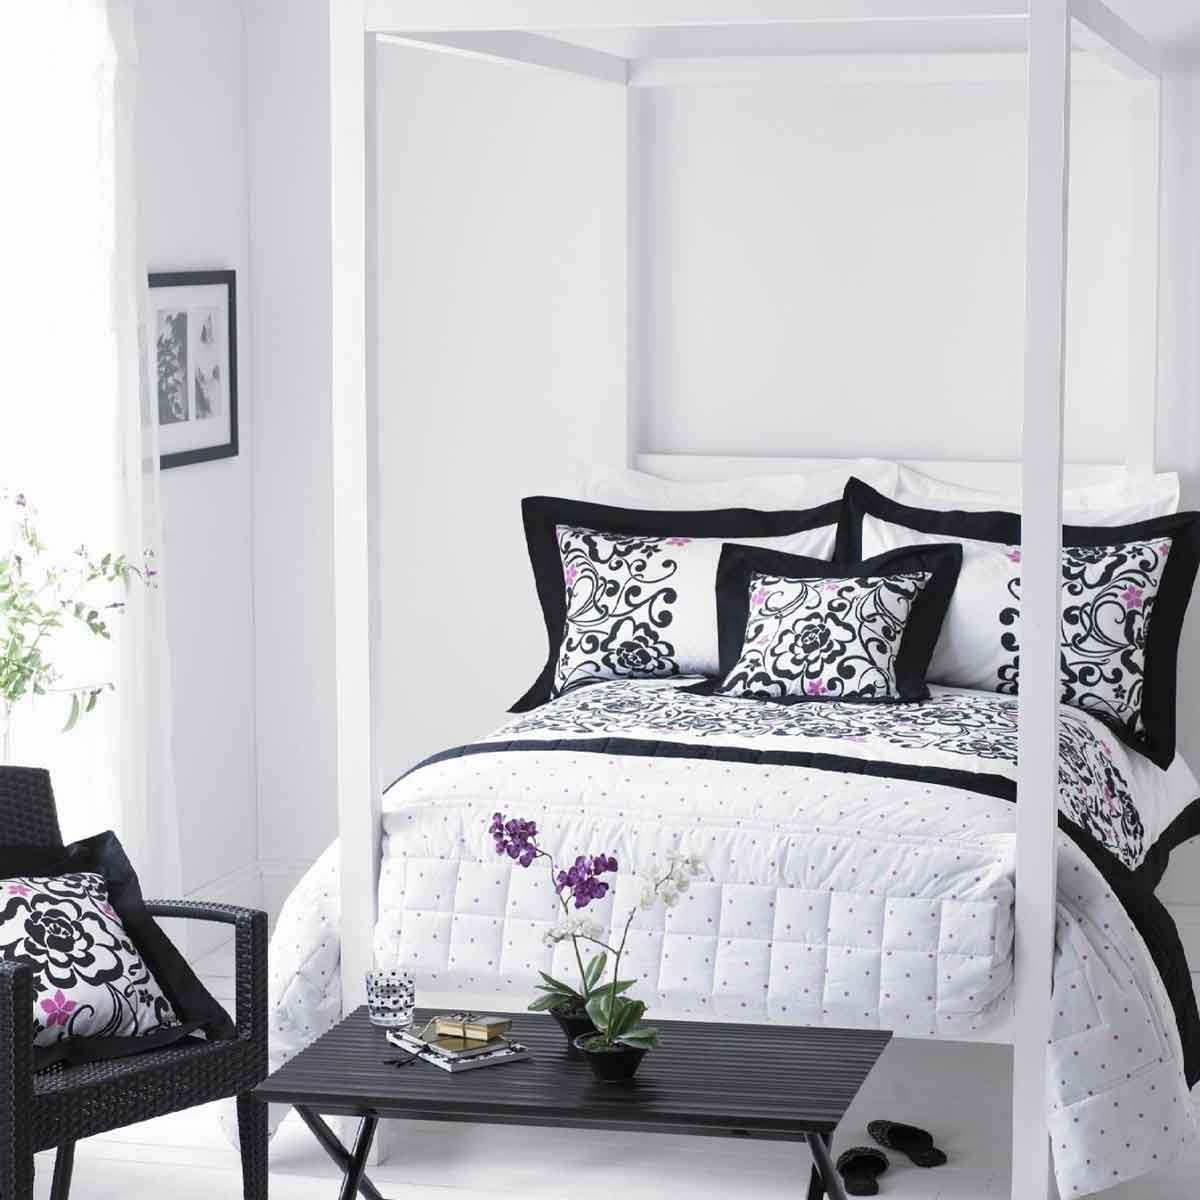 Modern Black and White Bedspreads Ideas